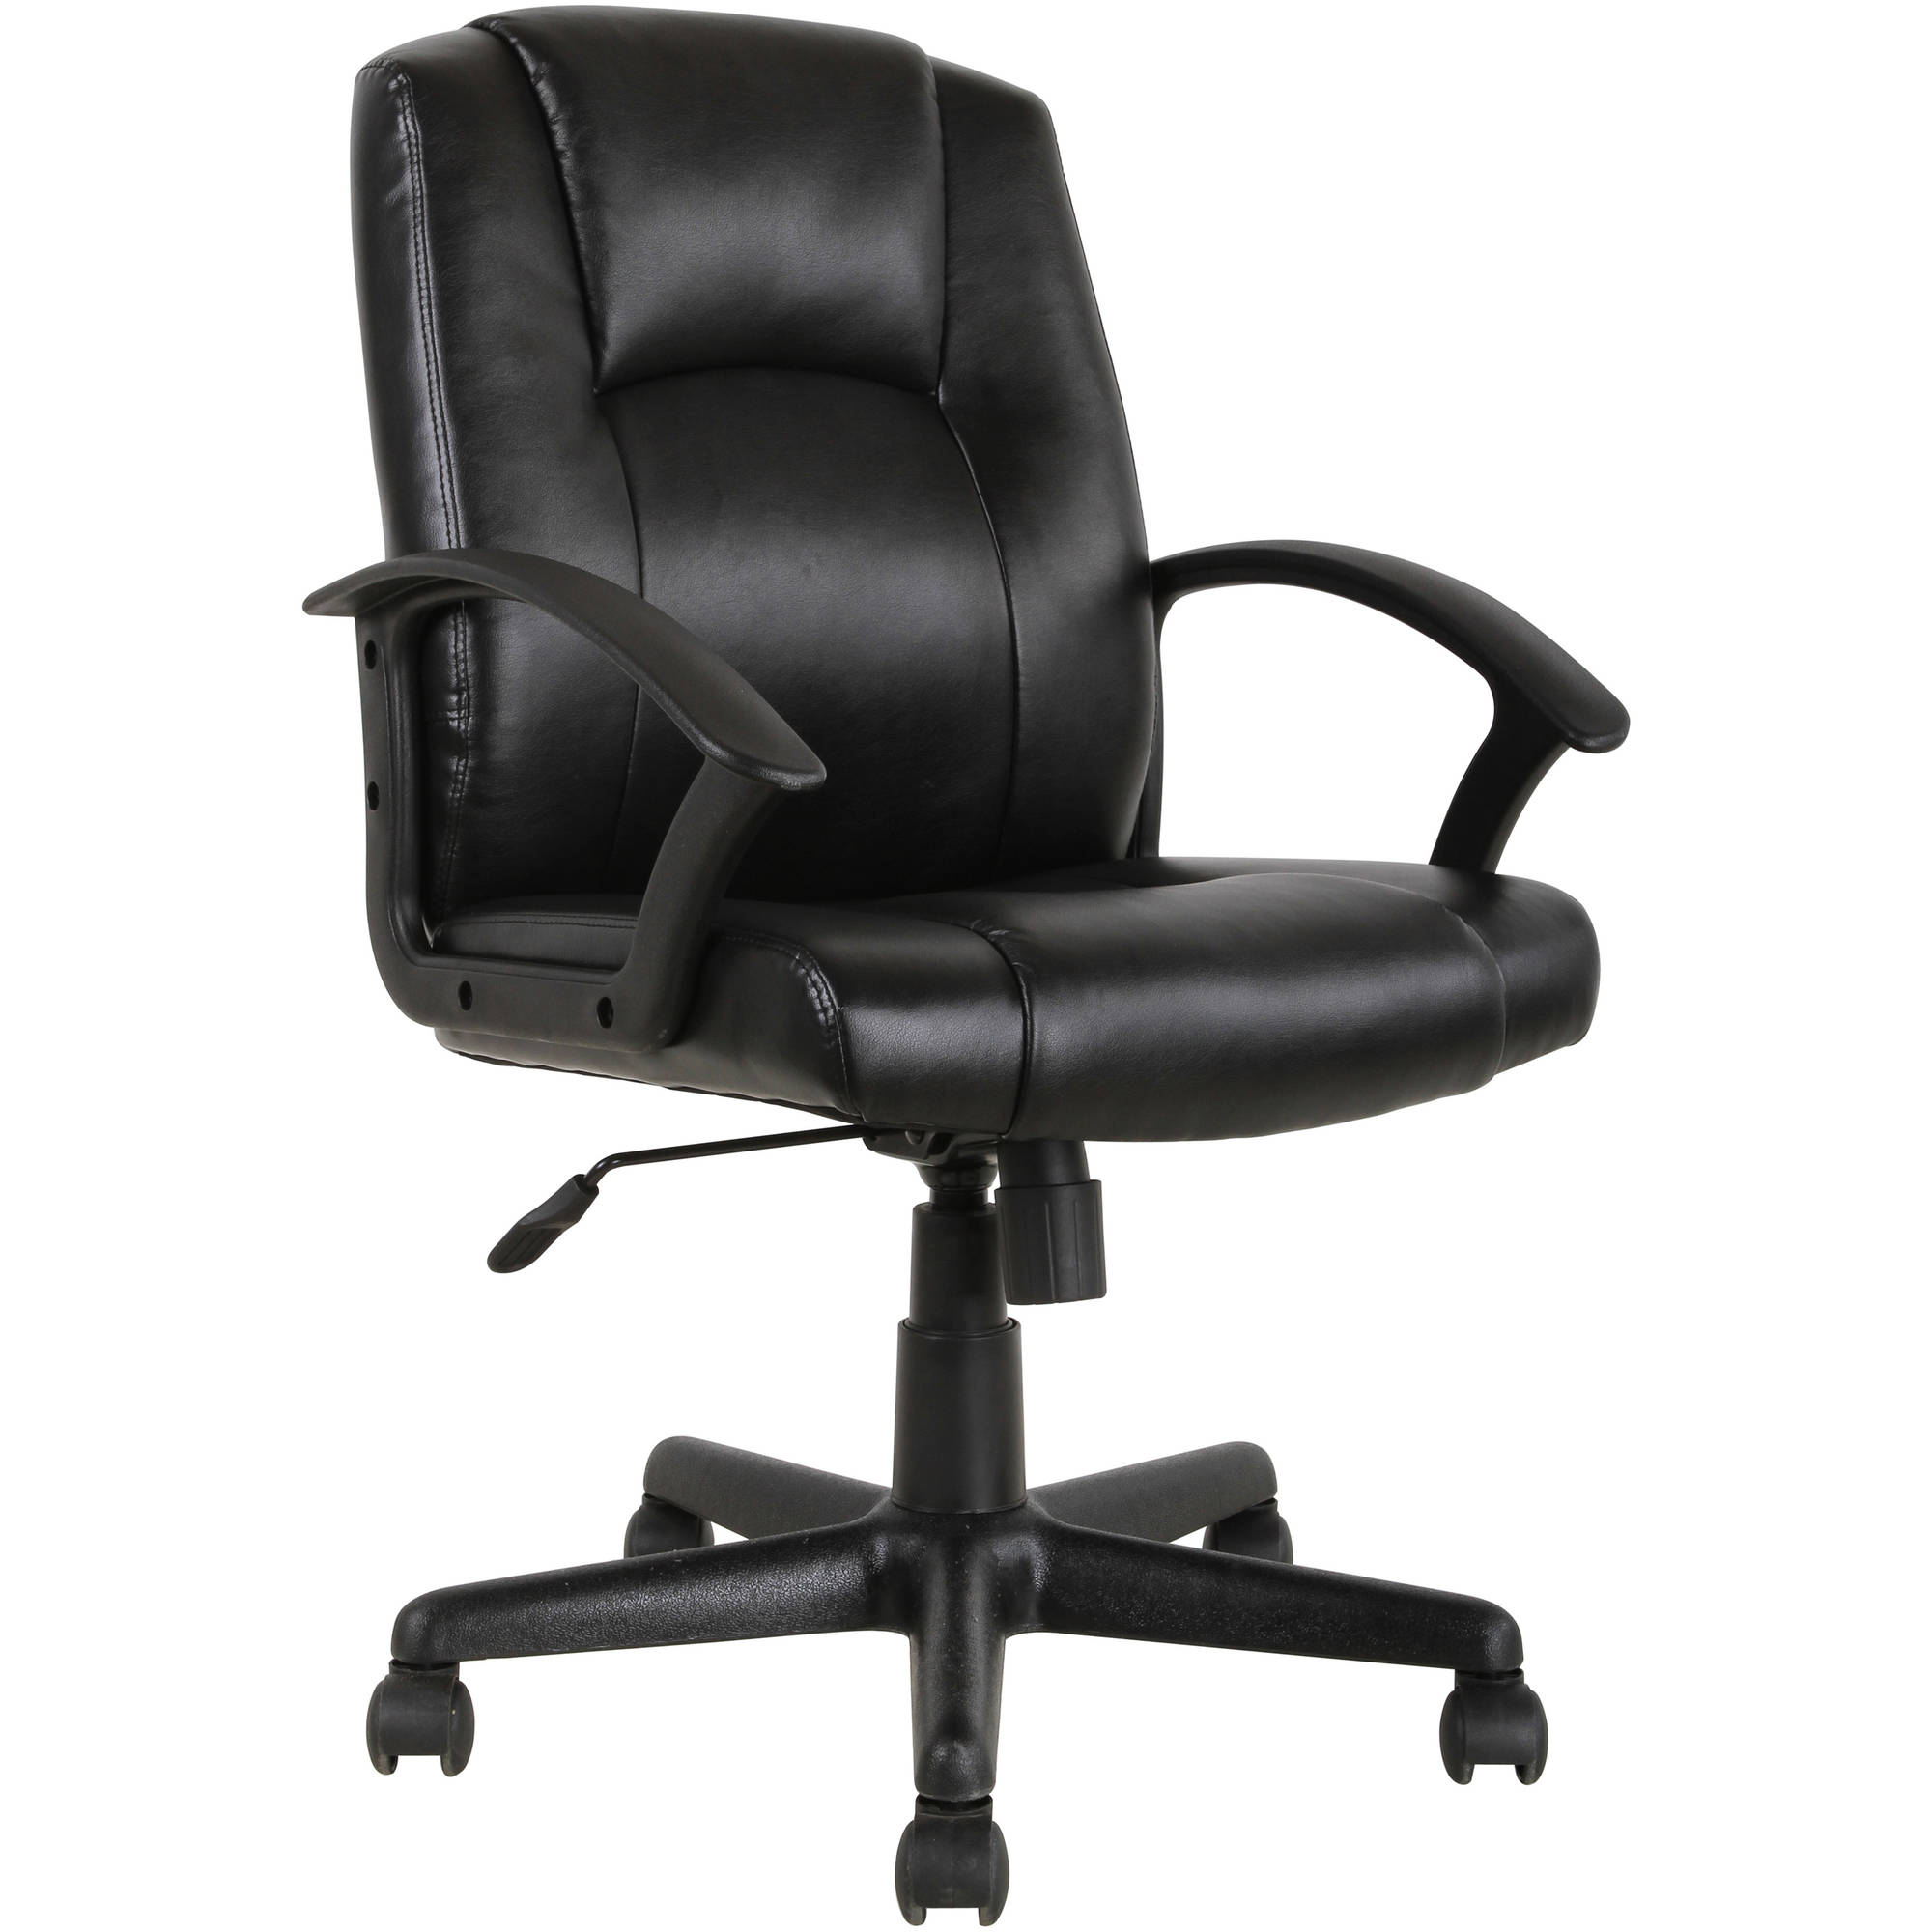 leather chair office craigslist dining chairs mainstays mid back black walmart com departments